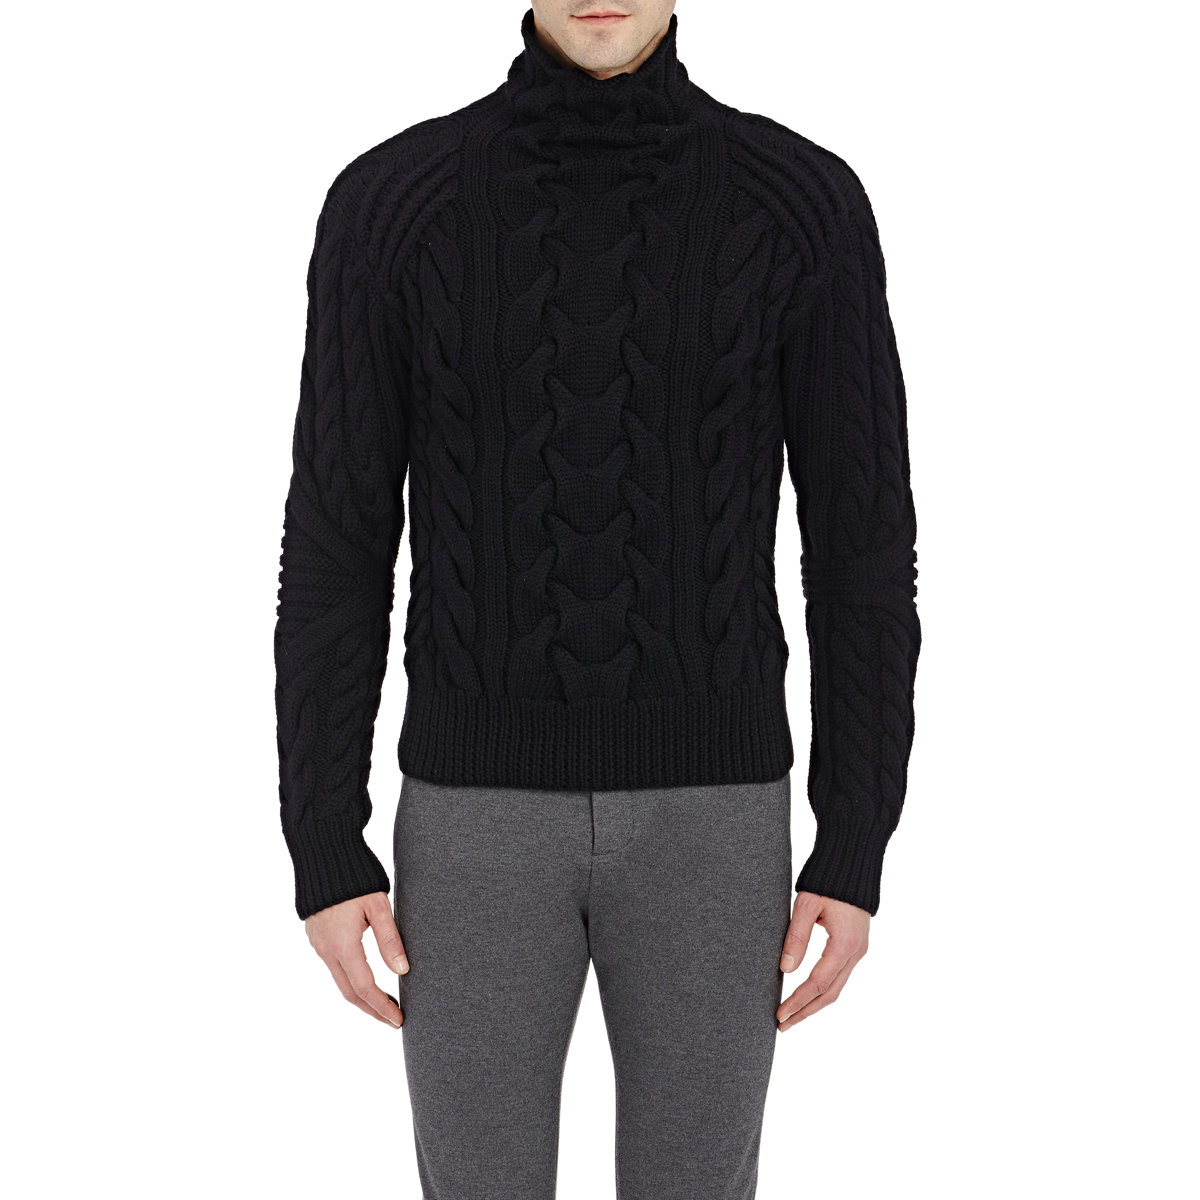 Ralph lauren black label Cable-knit Turtleneck Sweater in Black ...